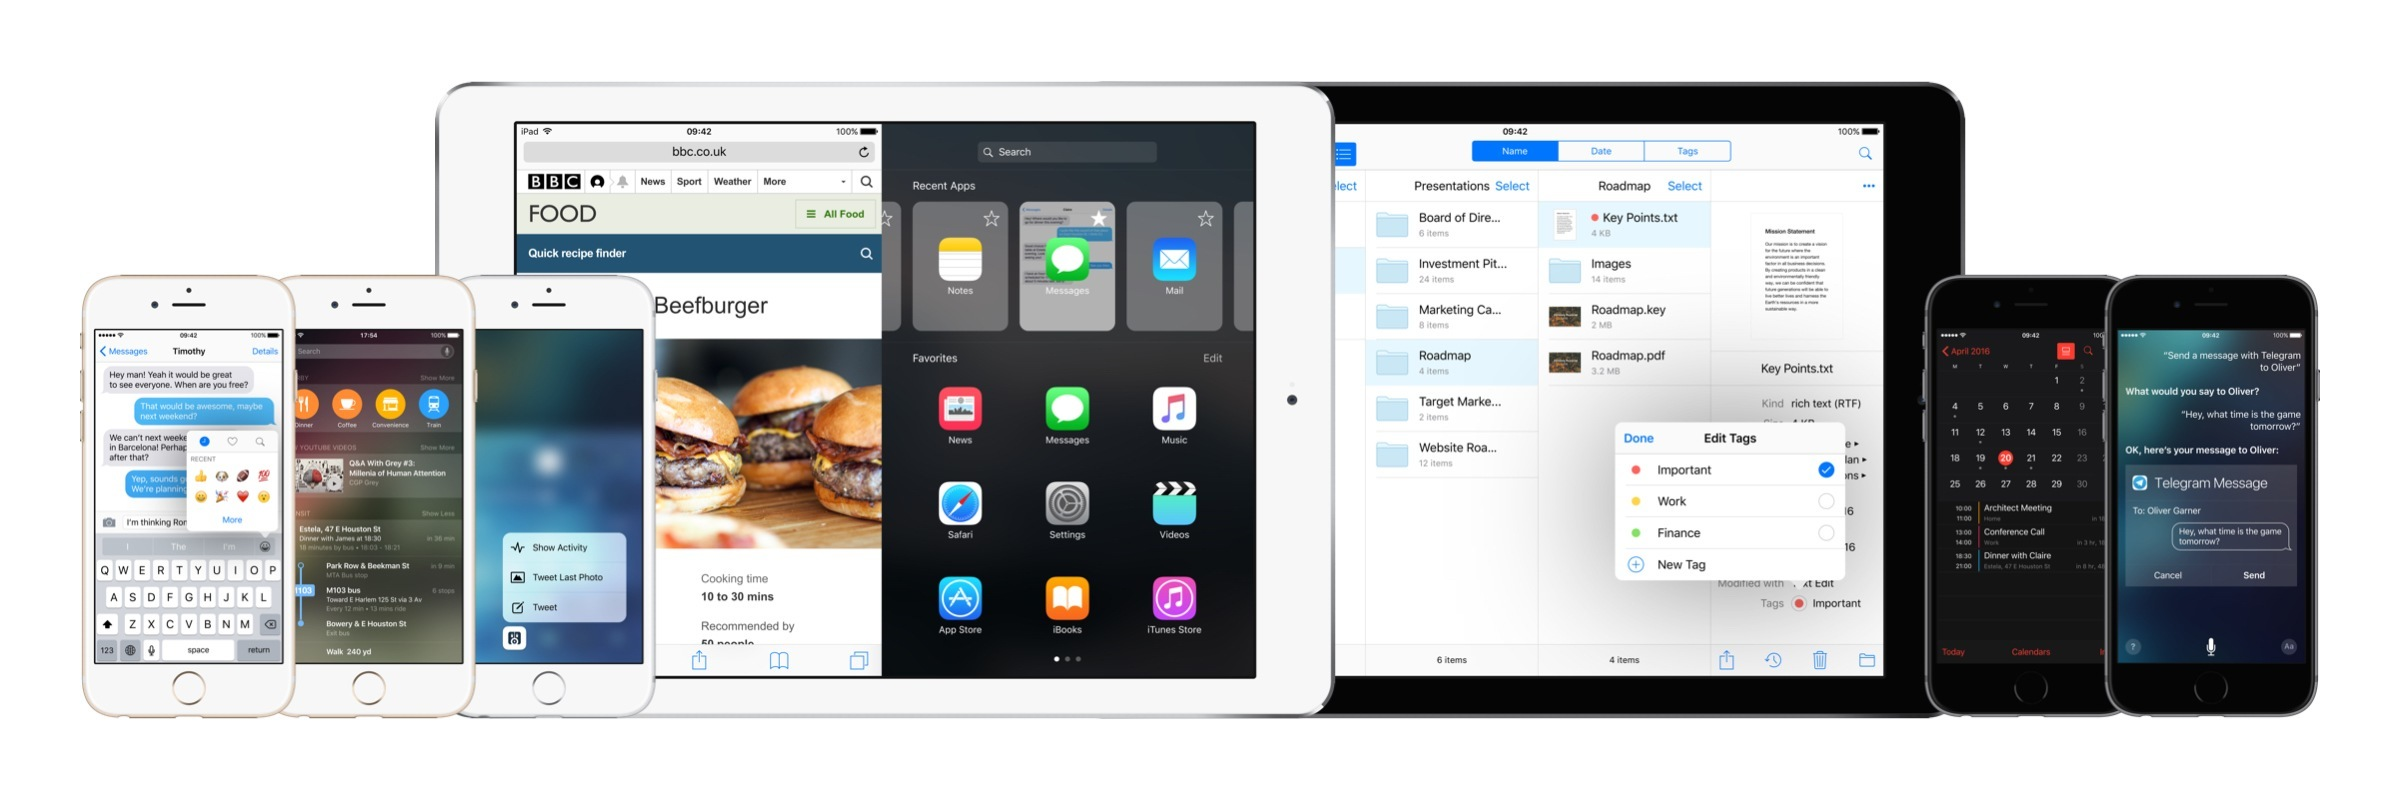 How To Download And Install Ios 10 On Iphone Ipad Without Data